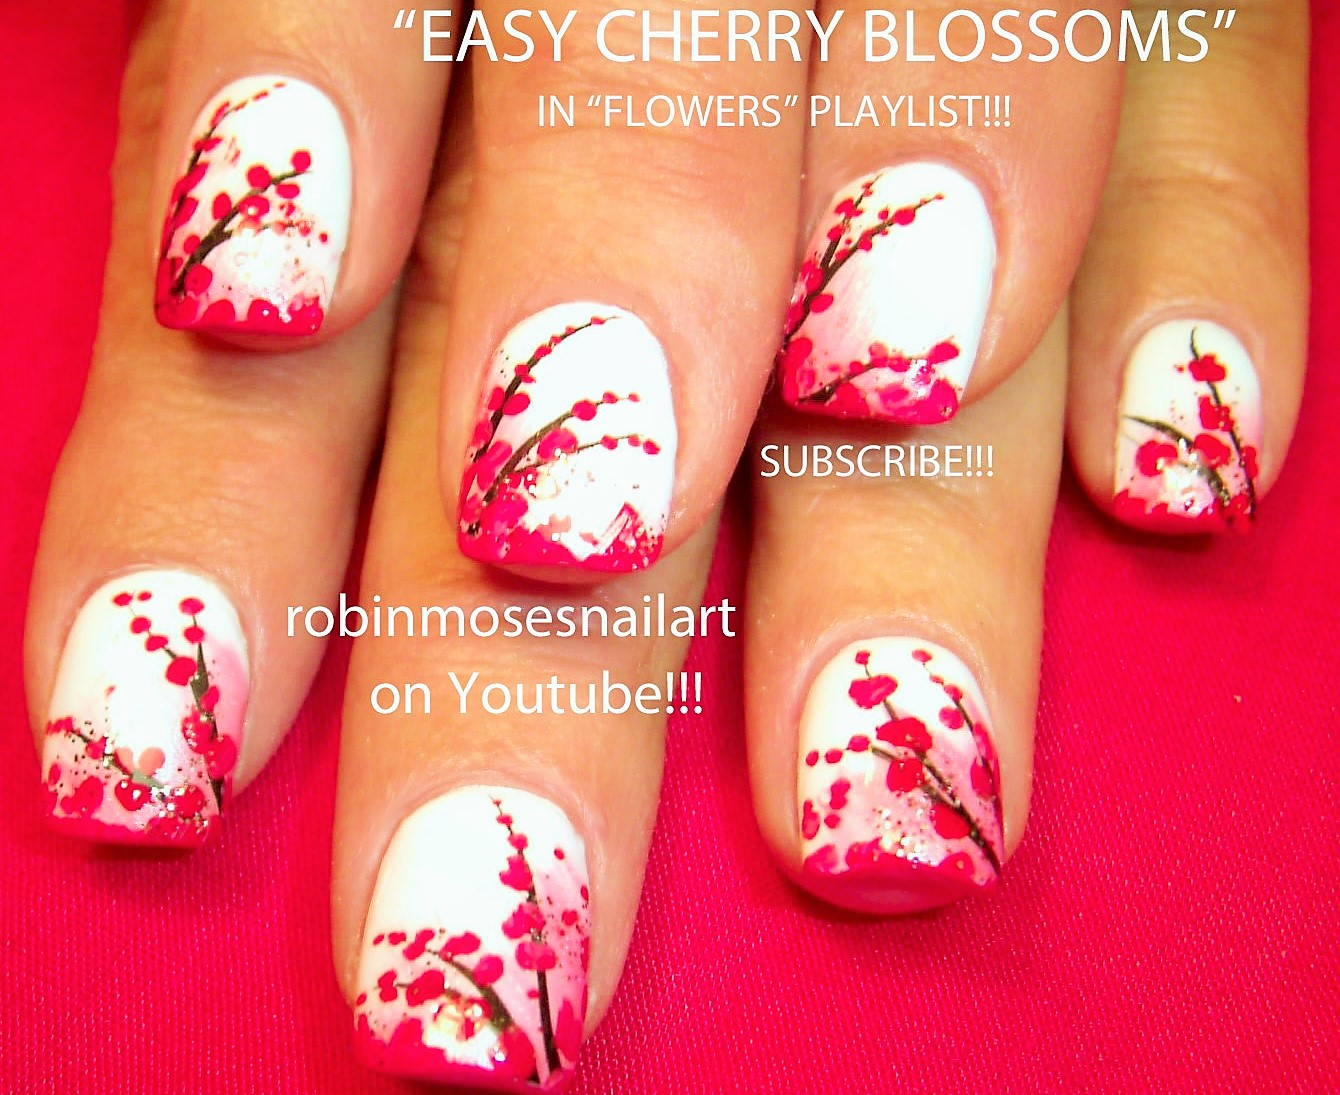 Robin moses nail art flower nails lavender and gray flowers play now prinsesfo Image collections